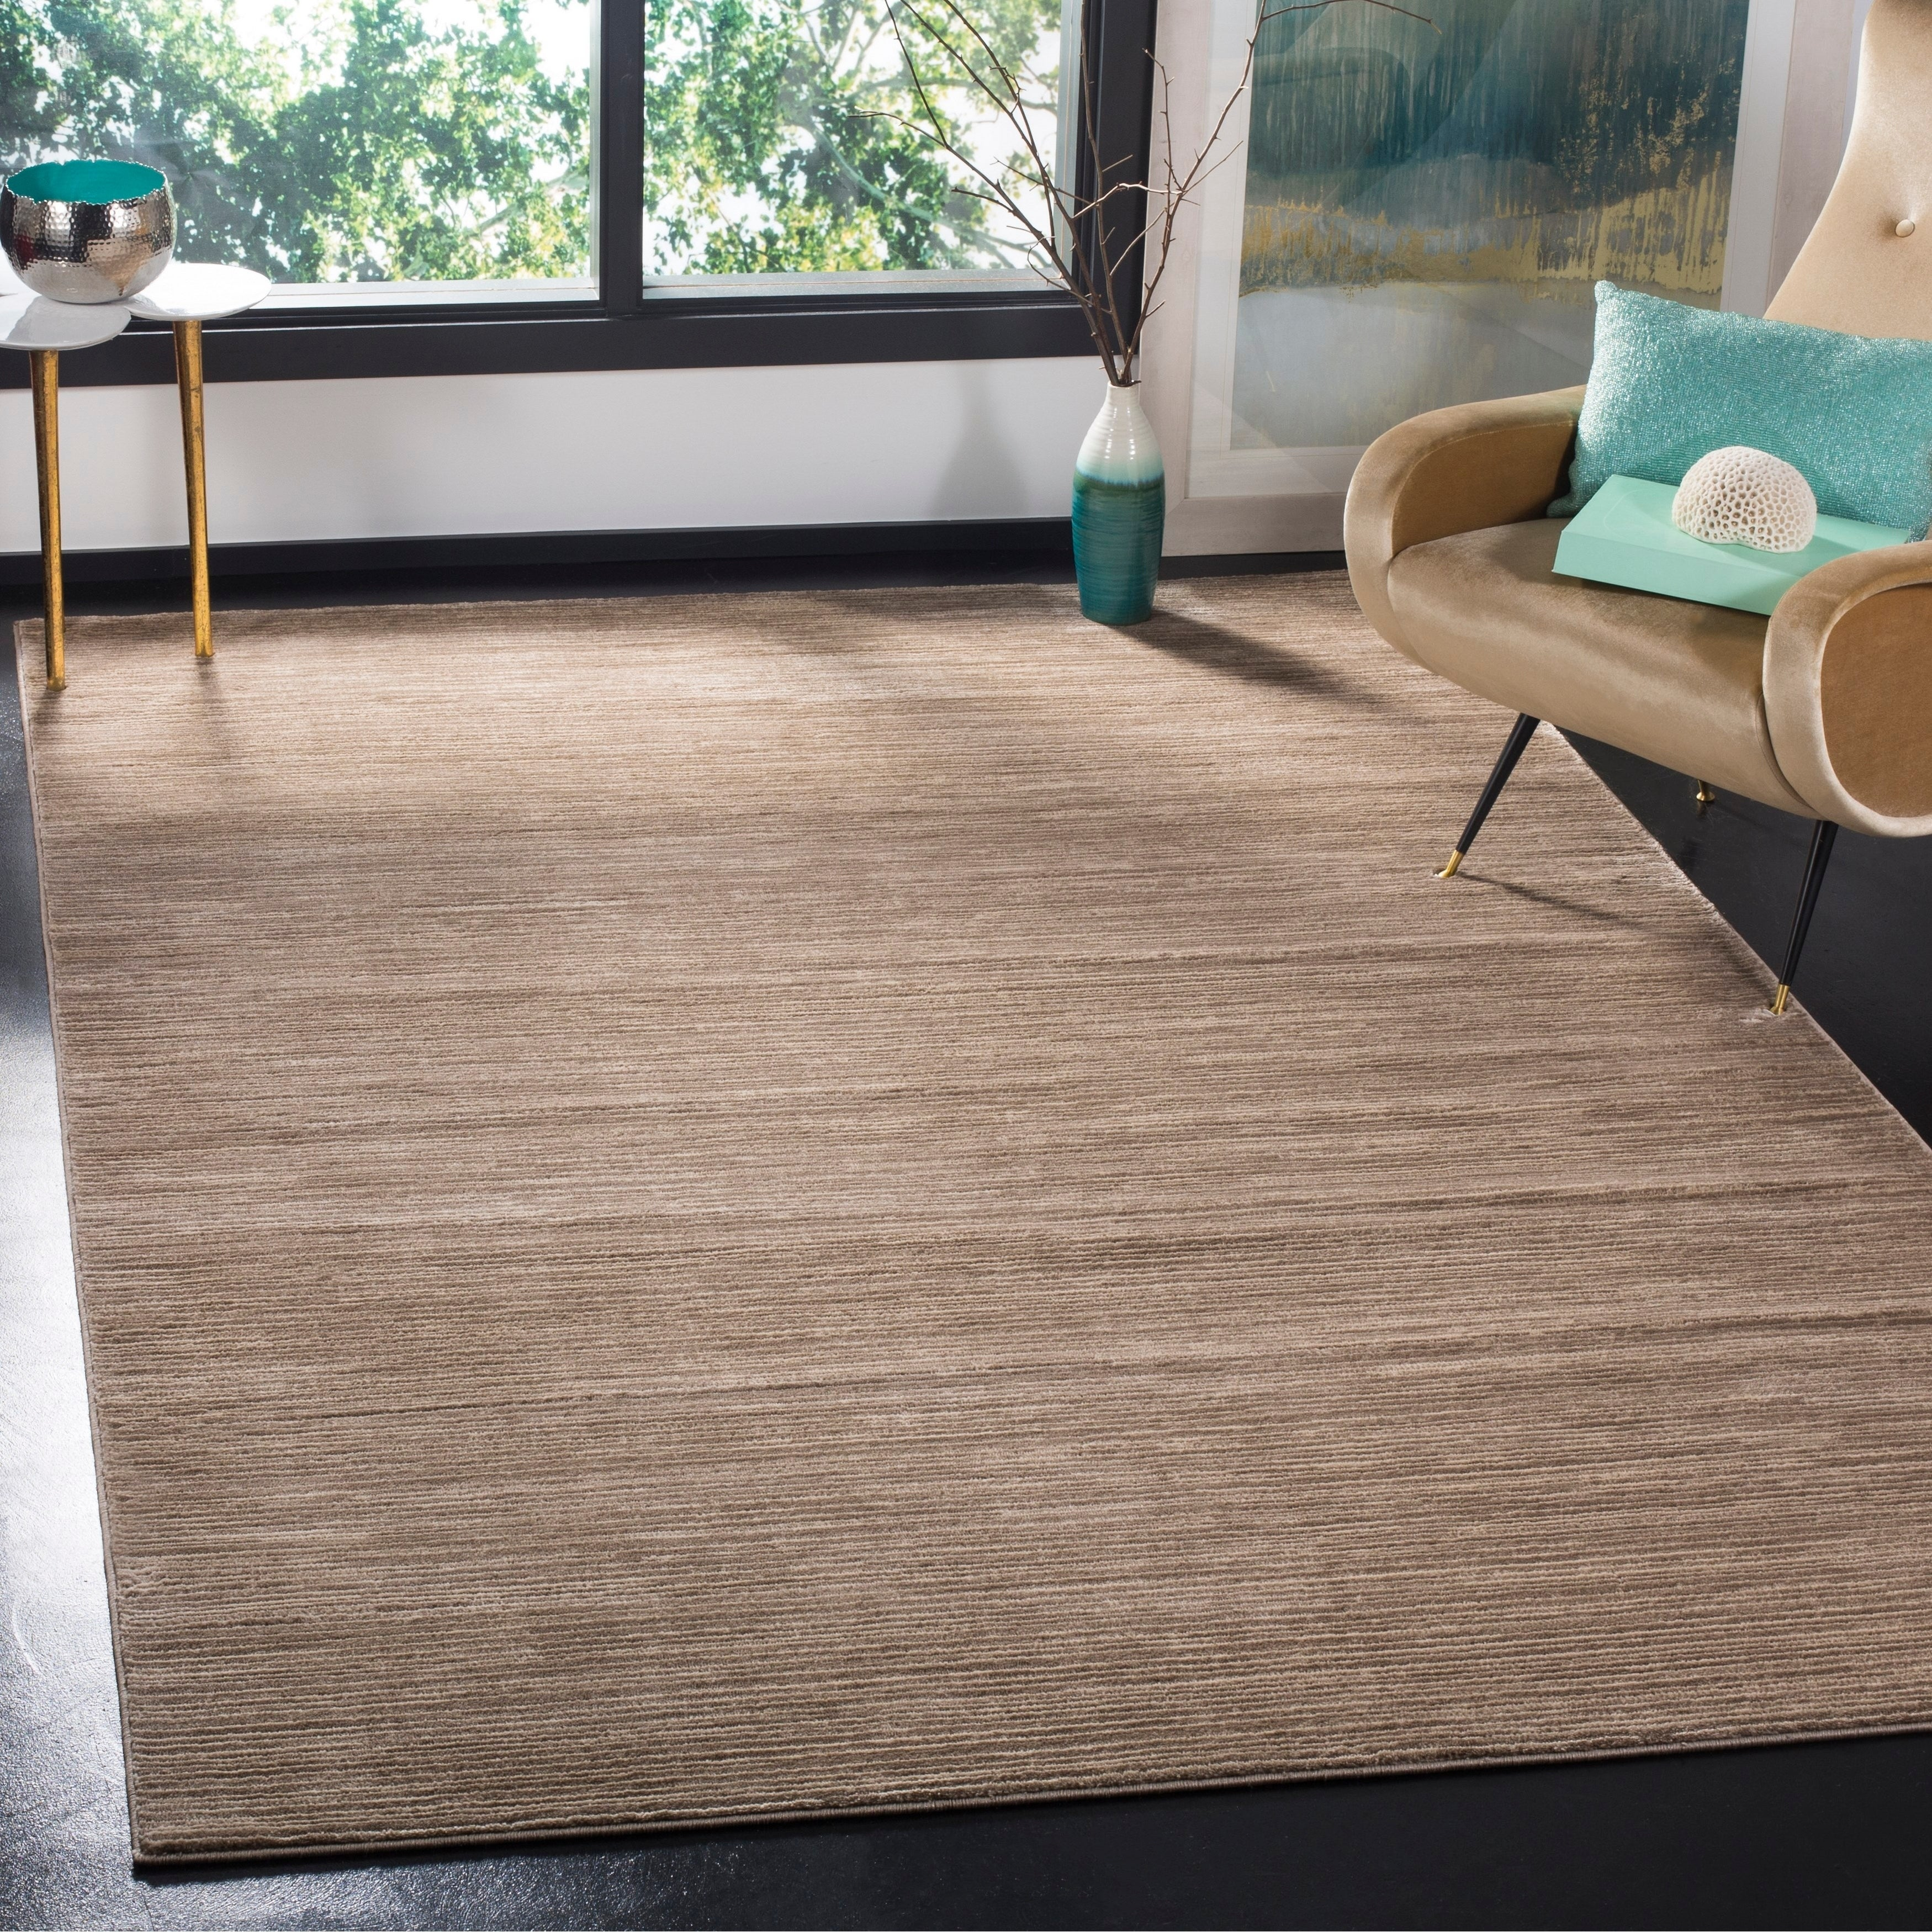 Buy Round Area Rugs Online At Overstock Our Best Rugs Deals